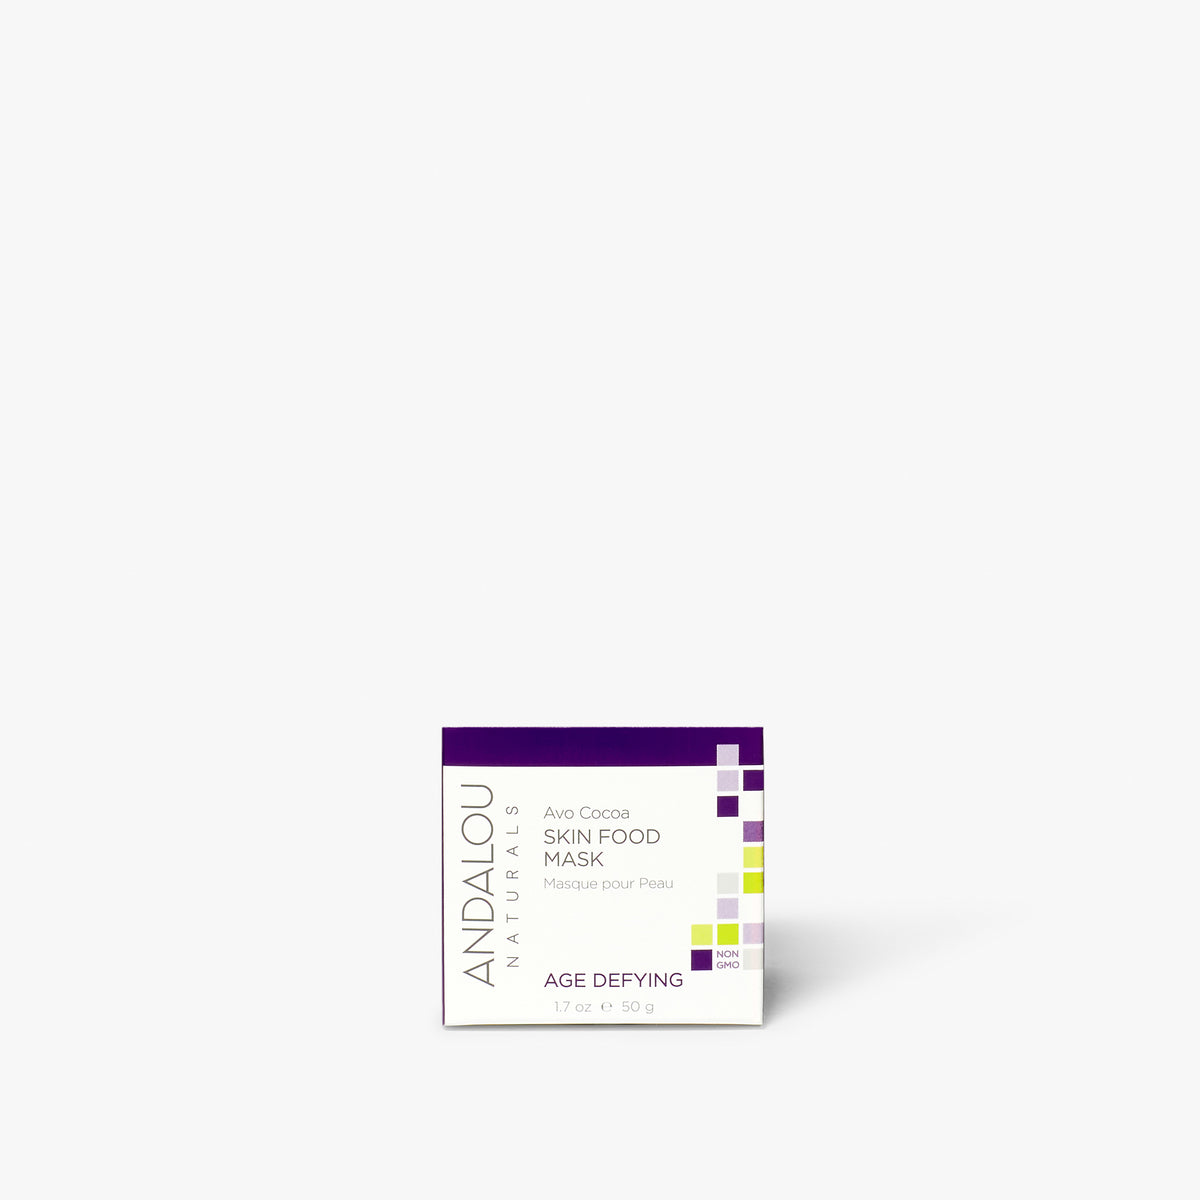 Andalou Naturals Age Defying Avo Cocoa Skin Food Mask box